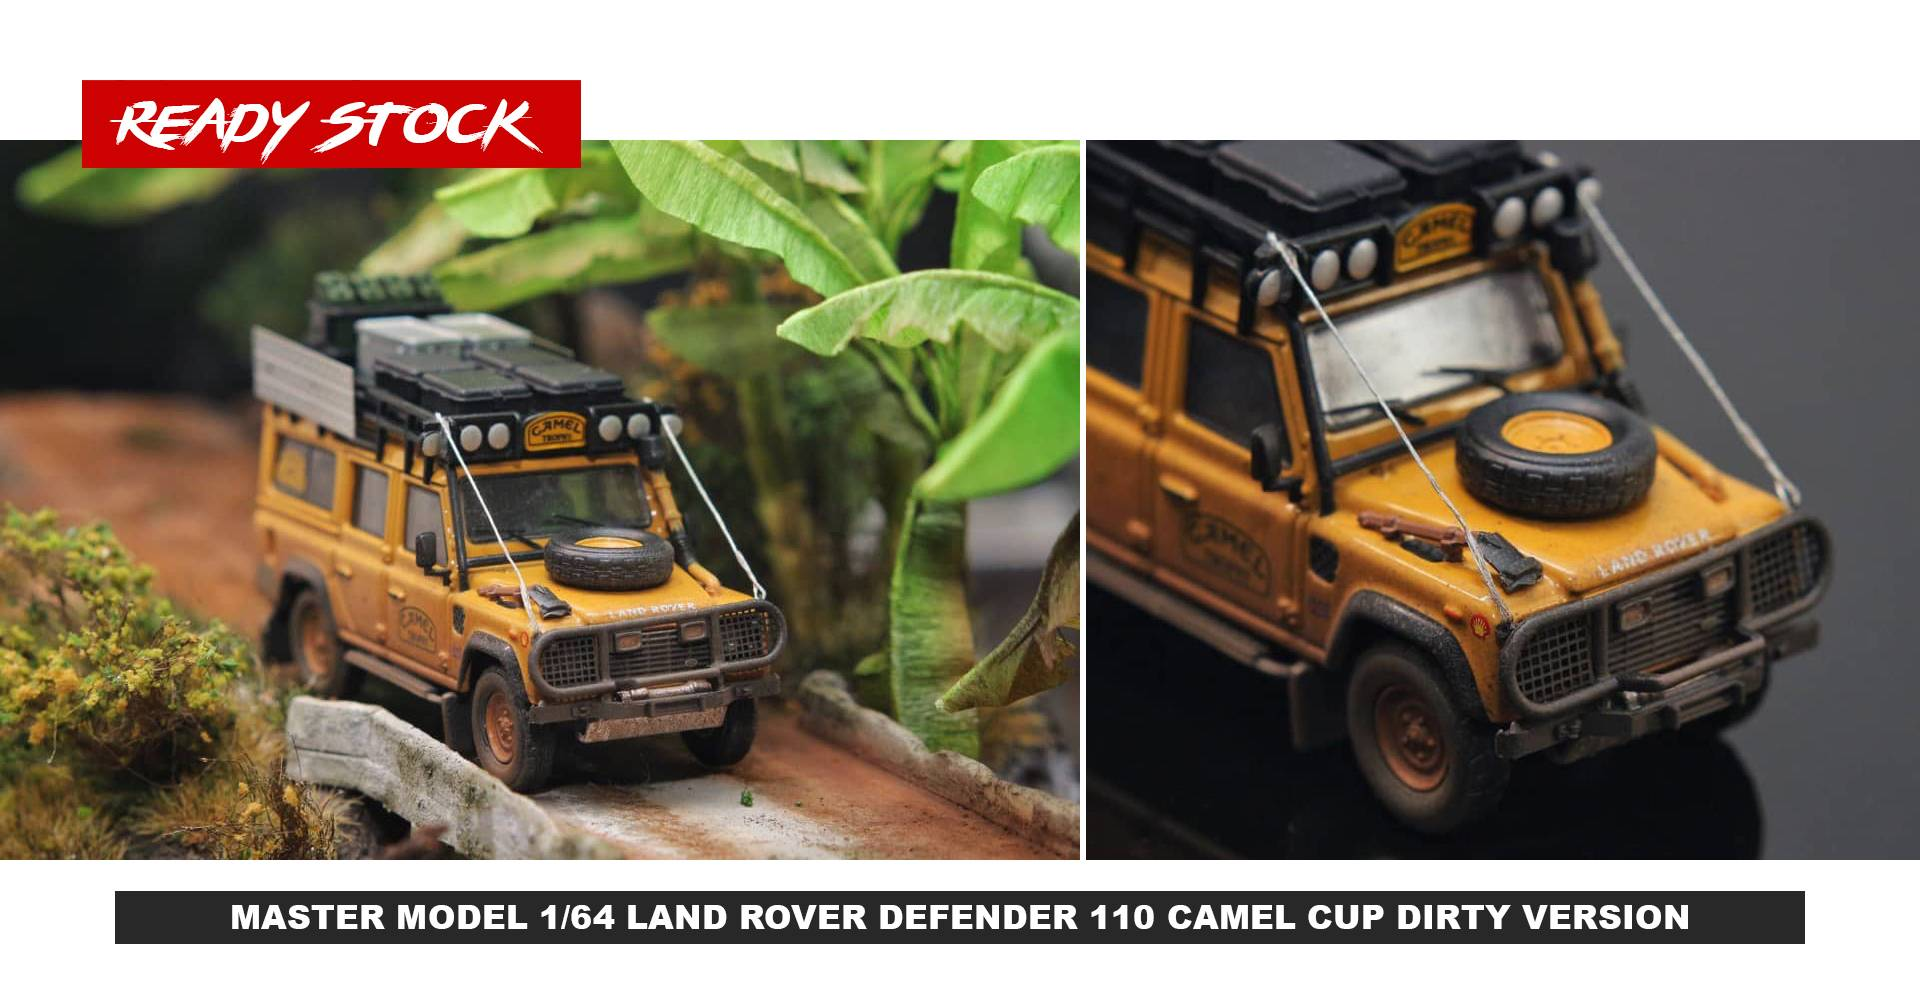 MASTER MODEL 1/64 LAND ROVER DEFENDER 110 CAMEL CUP DIRTY VERSION